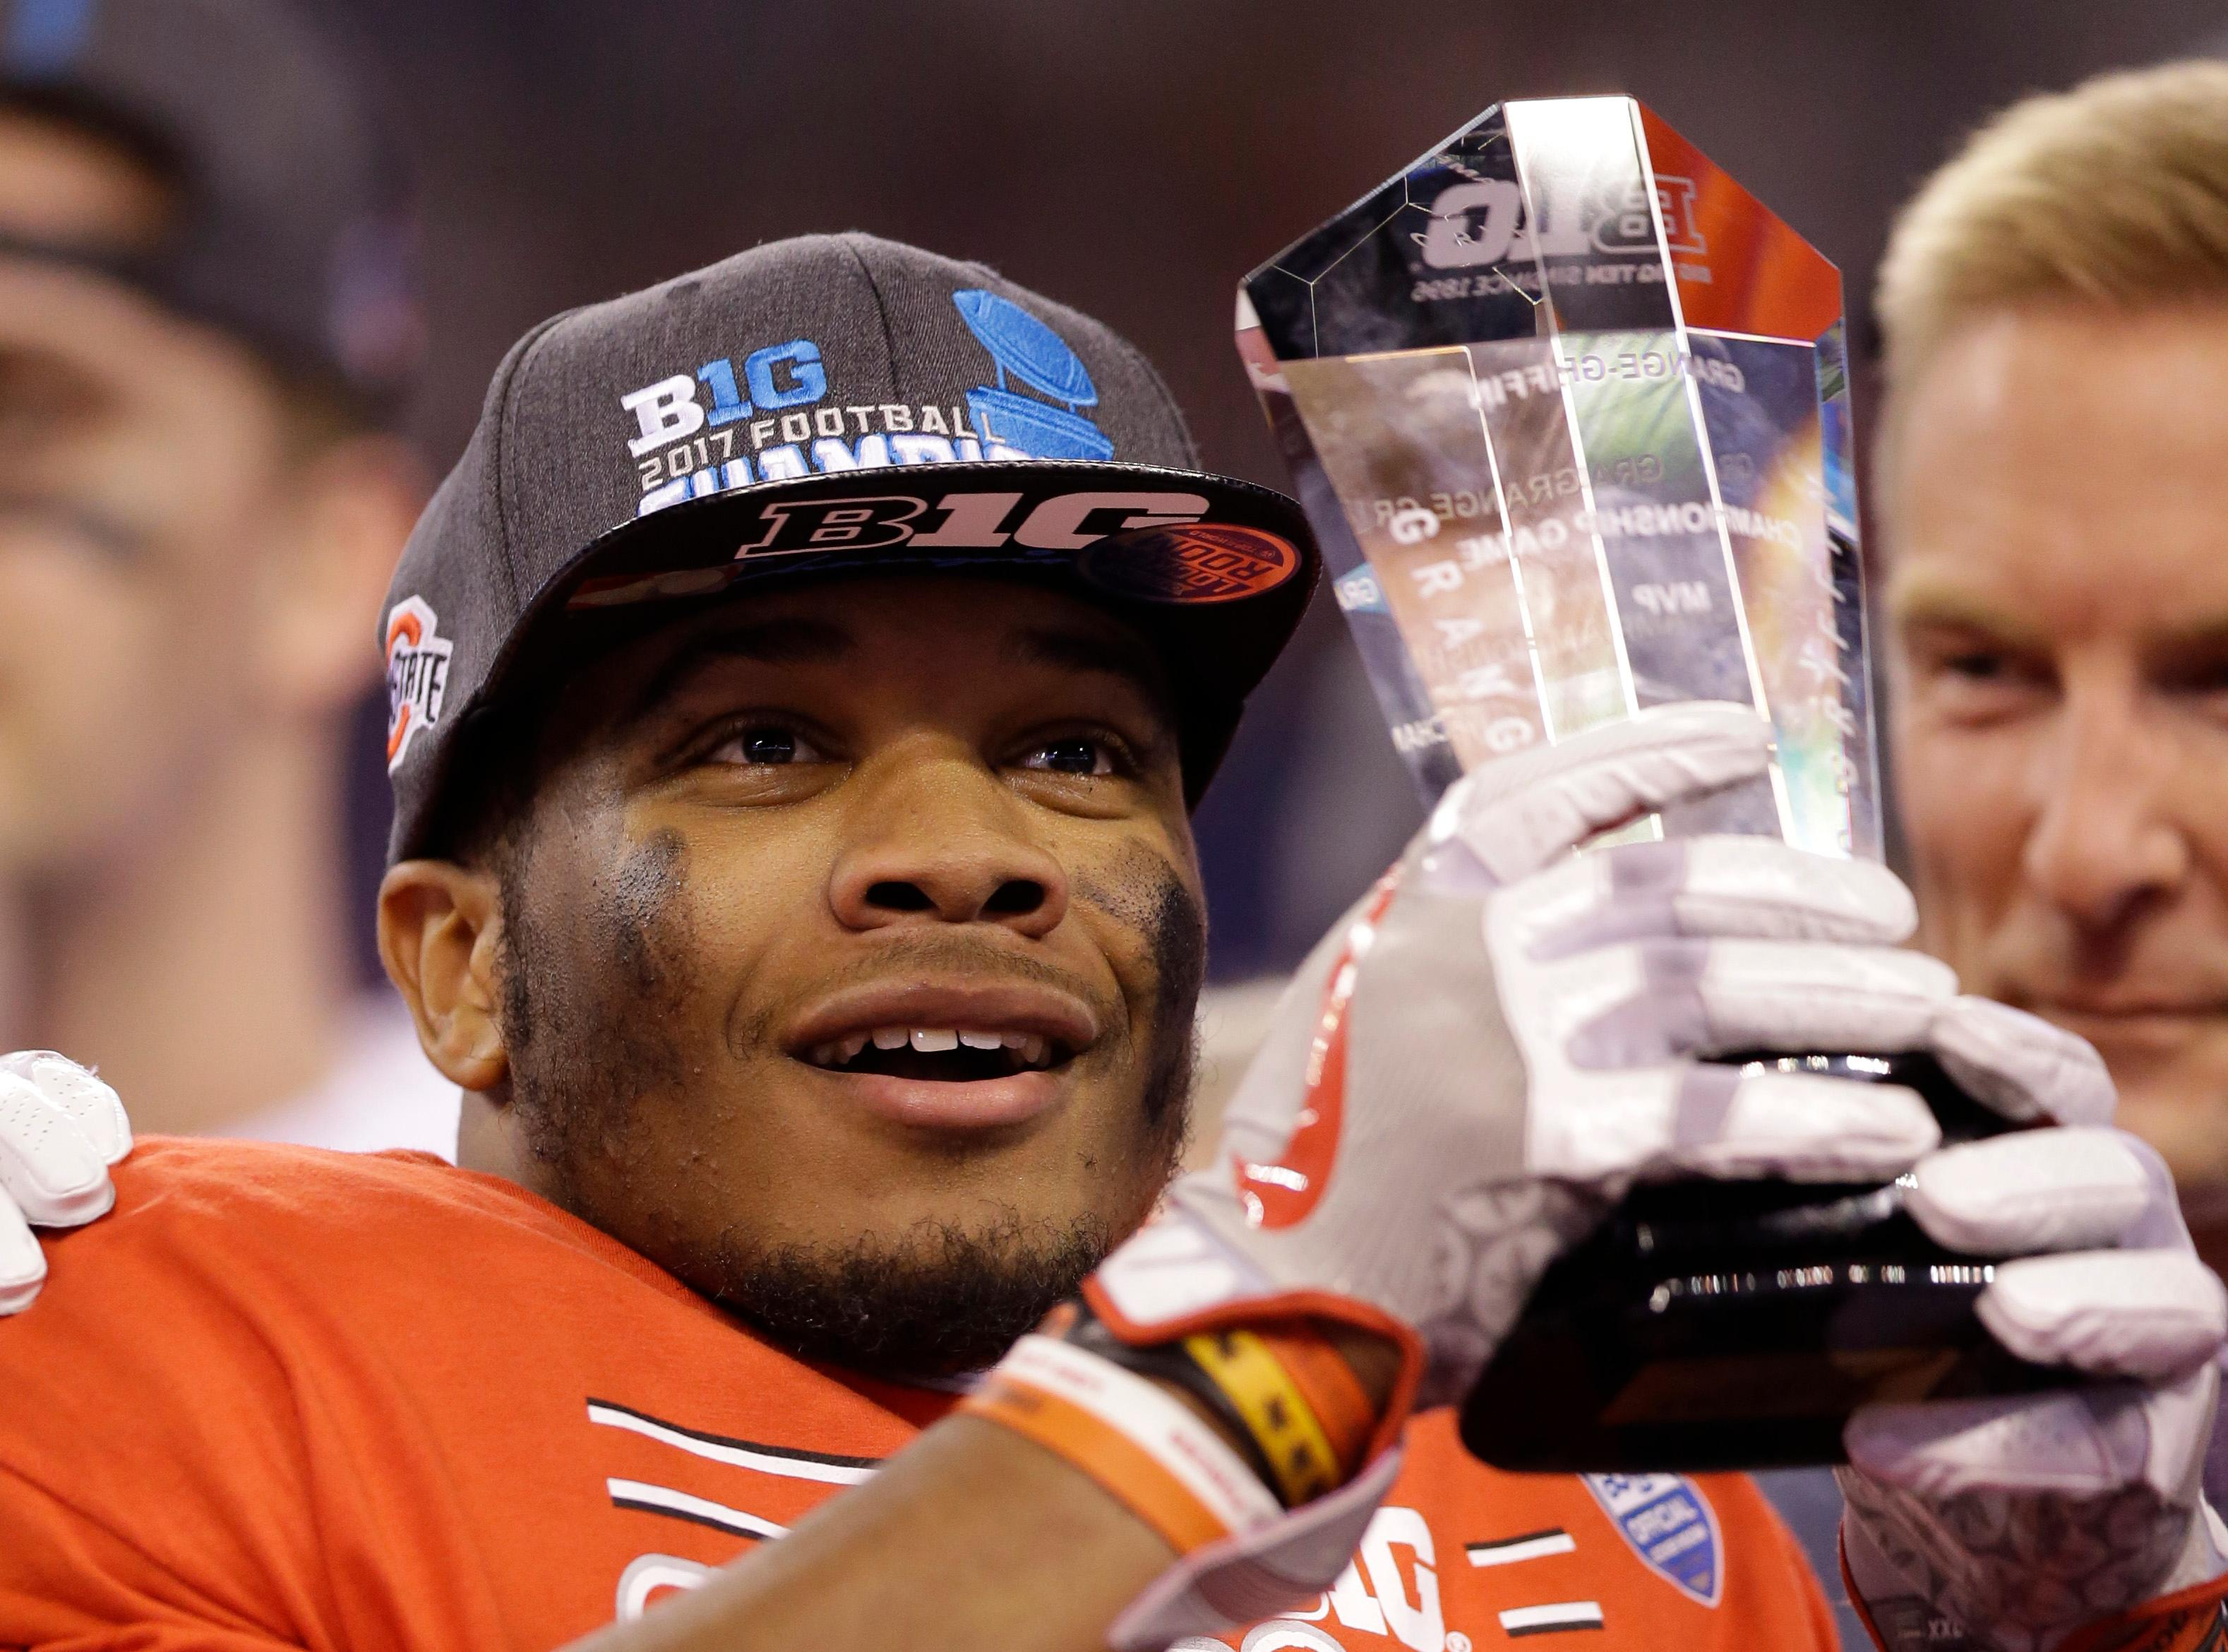 Ohio State's J.K. Dobbins holds the MVP trophy following the team's Big Ten championship NCAA college football game against Wisconsin, early Sunday, Dec. 3, 2017, in Indianapolis. Ohio State won 27-21. (AP Photo/AJ Mast)